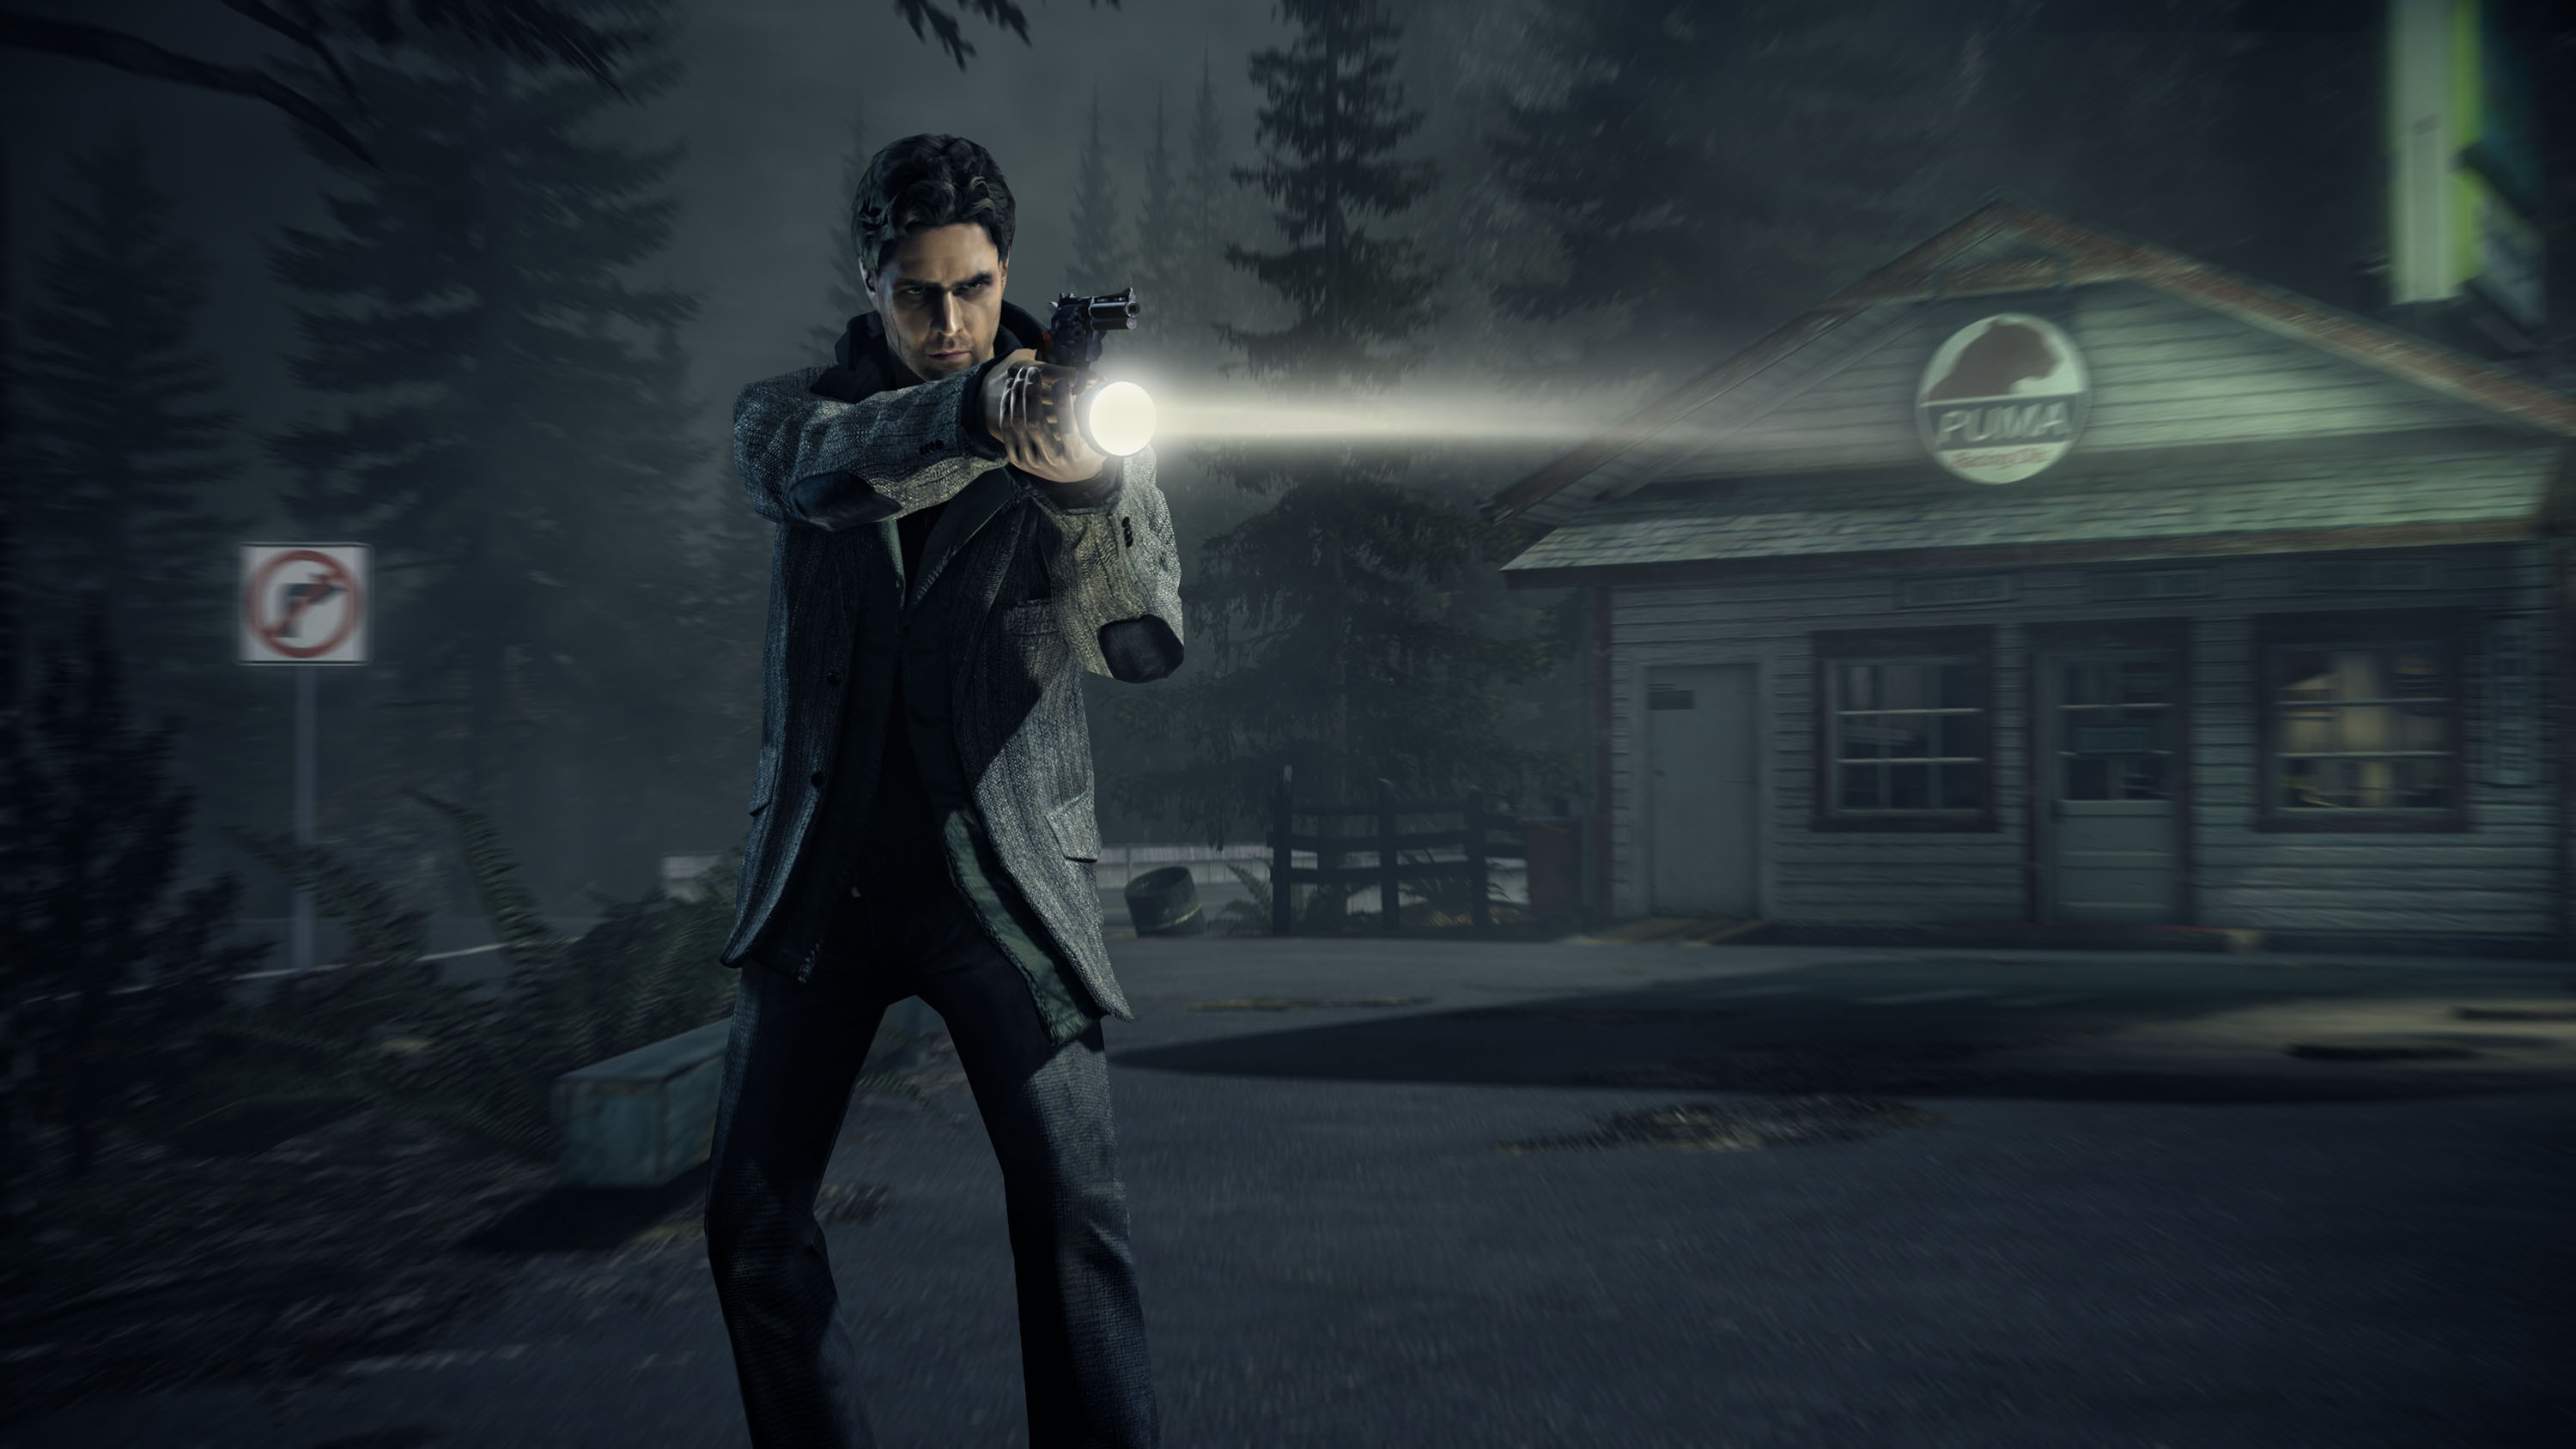 Alan Wake Backgrounds on Wallpapers Vista